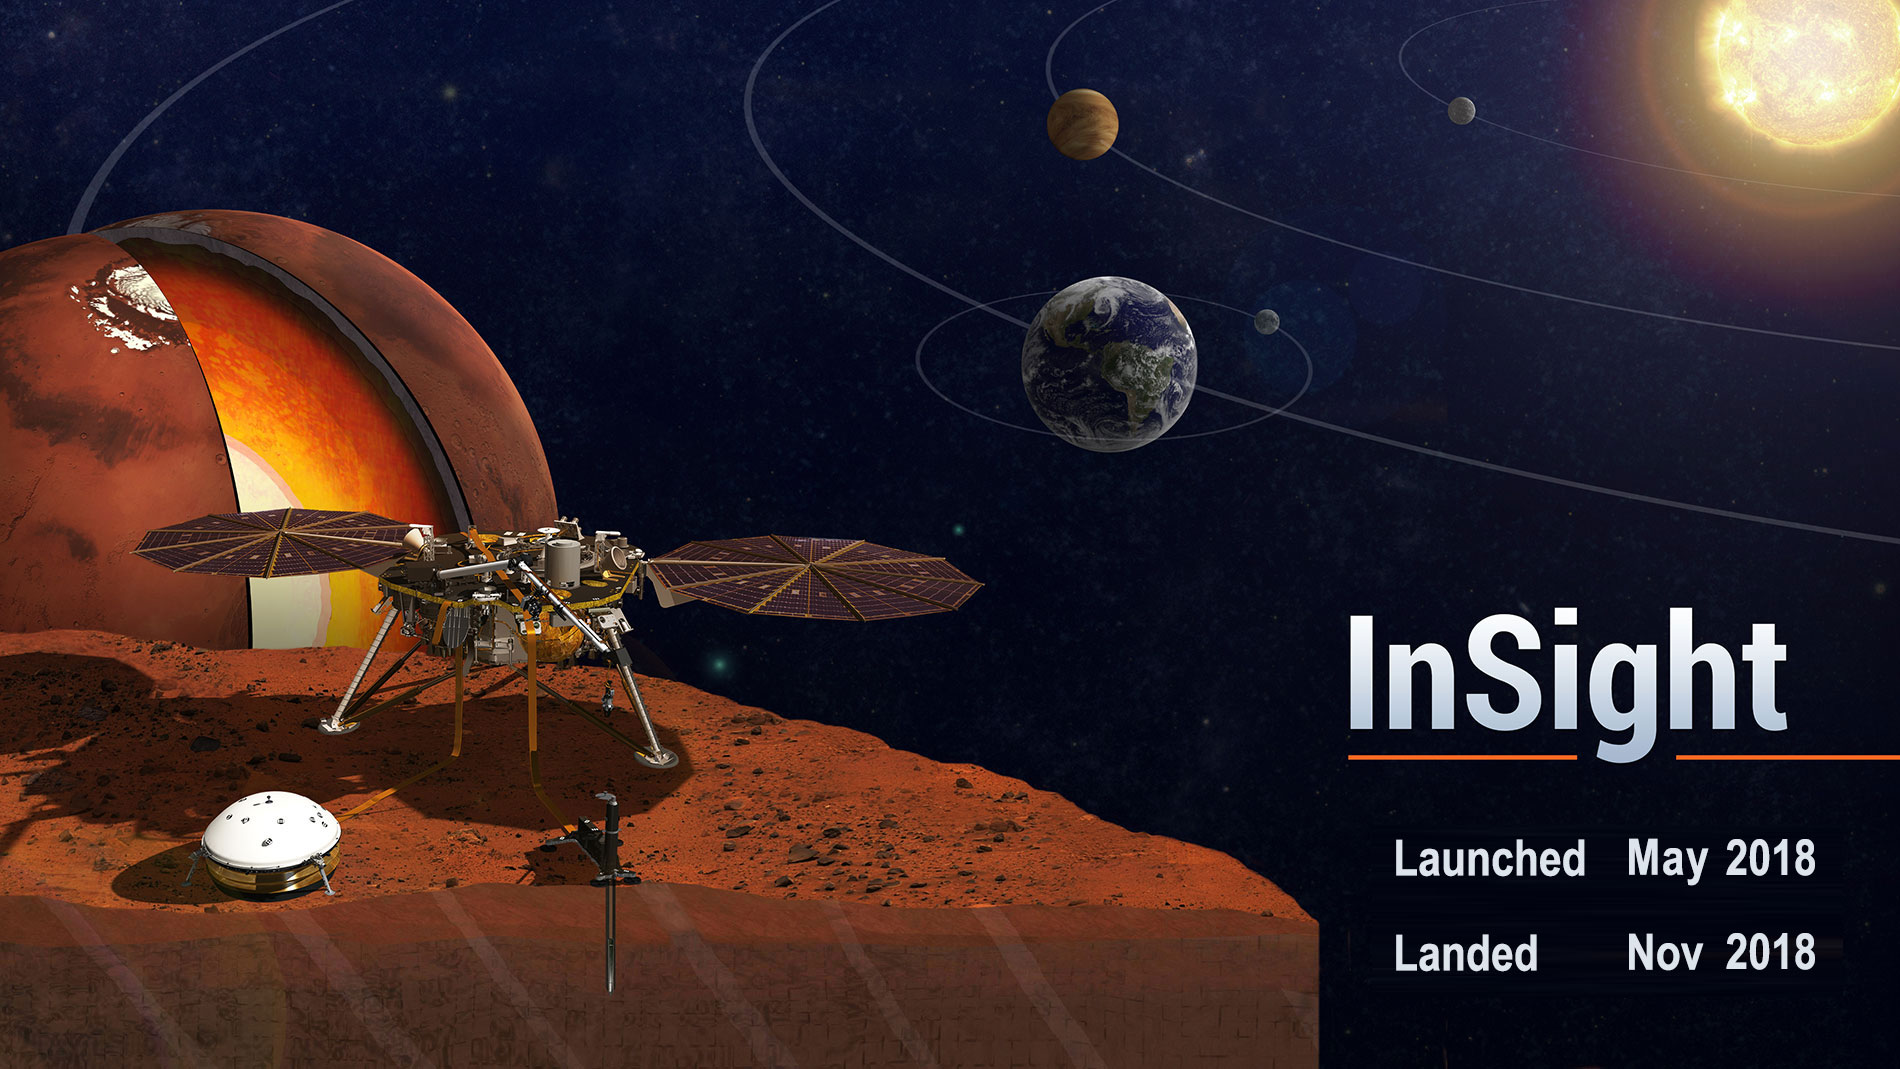 V Naam Ke Log Send Your Name To Mars Insight